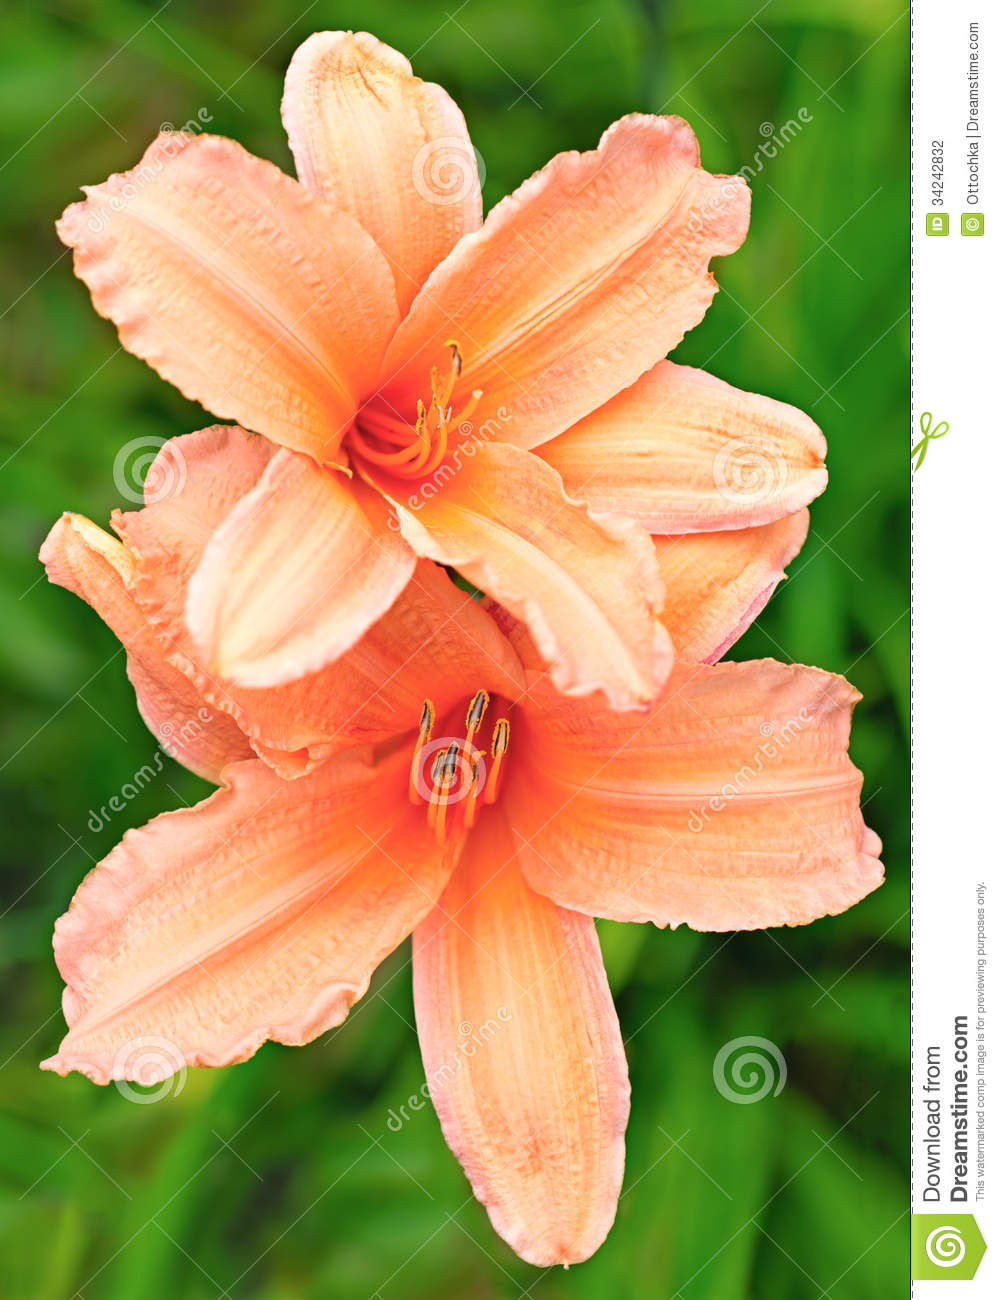 Lily peach color in nature stock photo image of bright 34242832 lily peach color in nature izmirmasajfo Images